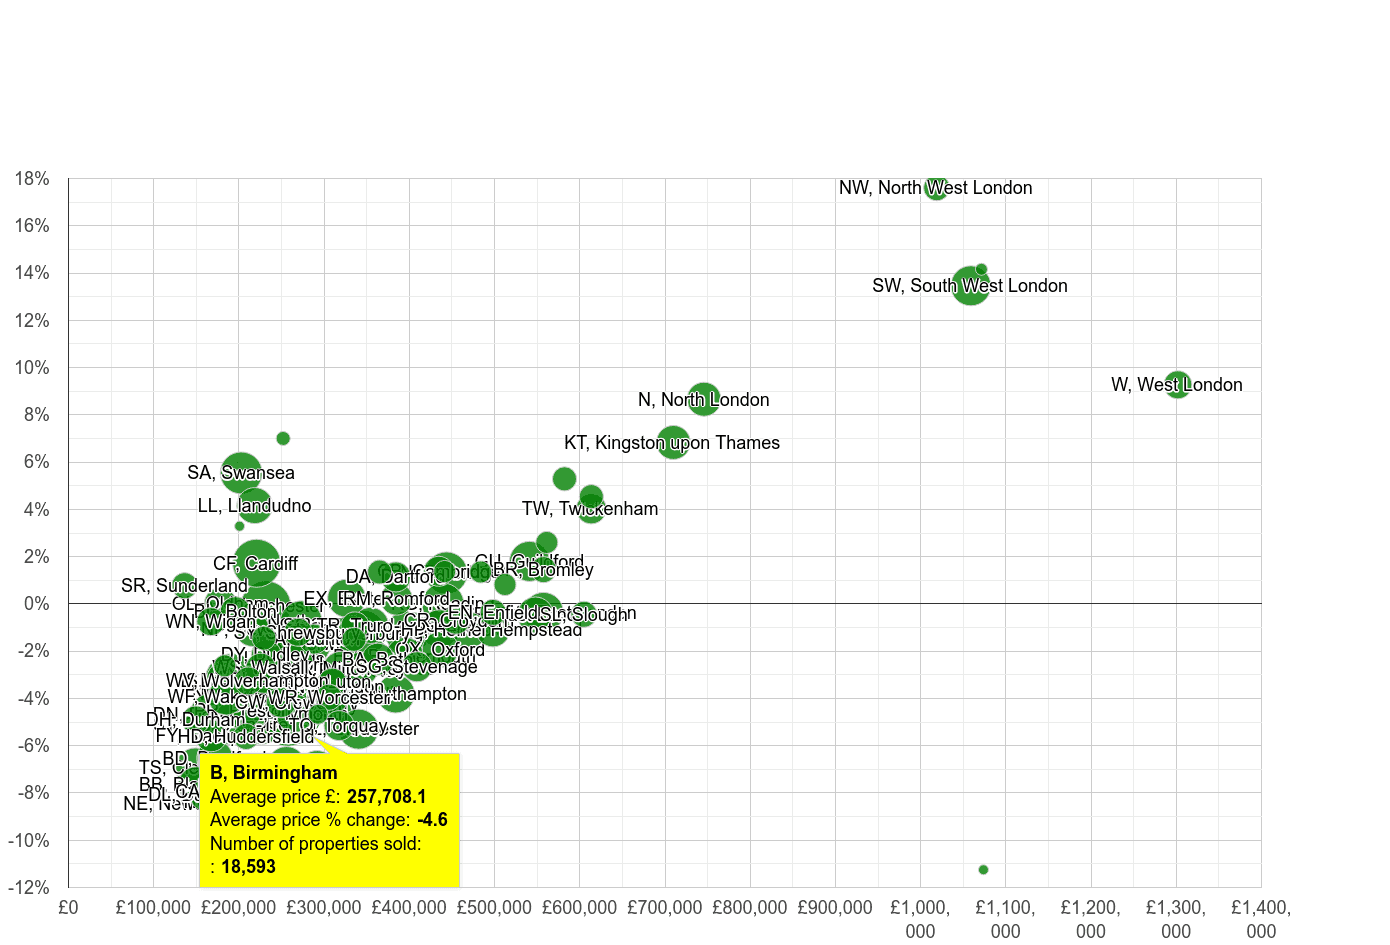 Birmingham house prices compared to other areas